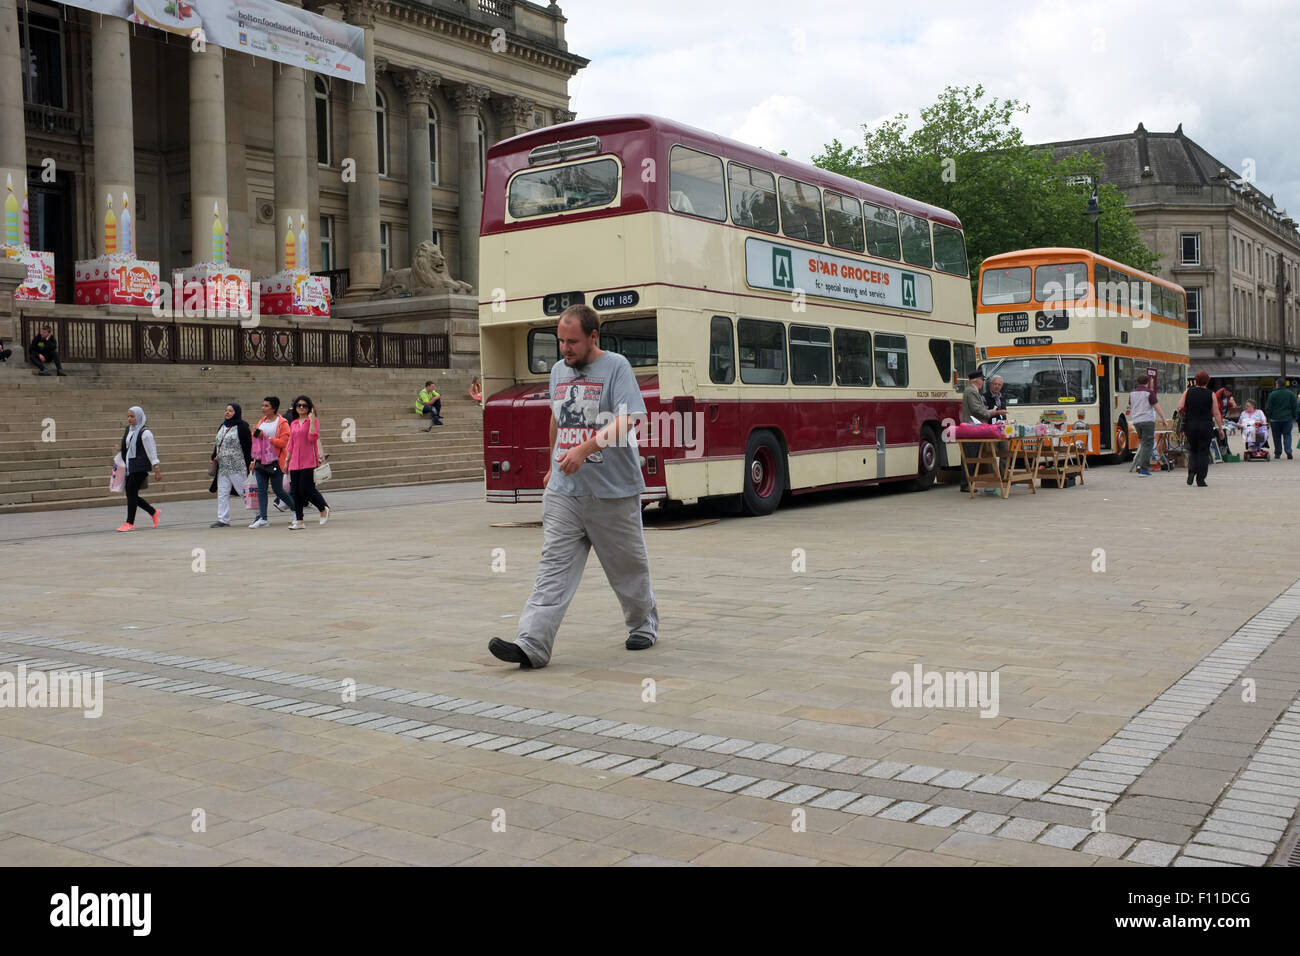 Bolton Bus Preservation Group fund raising event in Victoria Square, Bolton, England UK - Stock Image